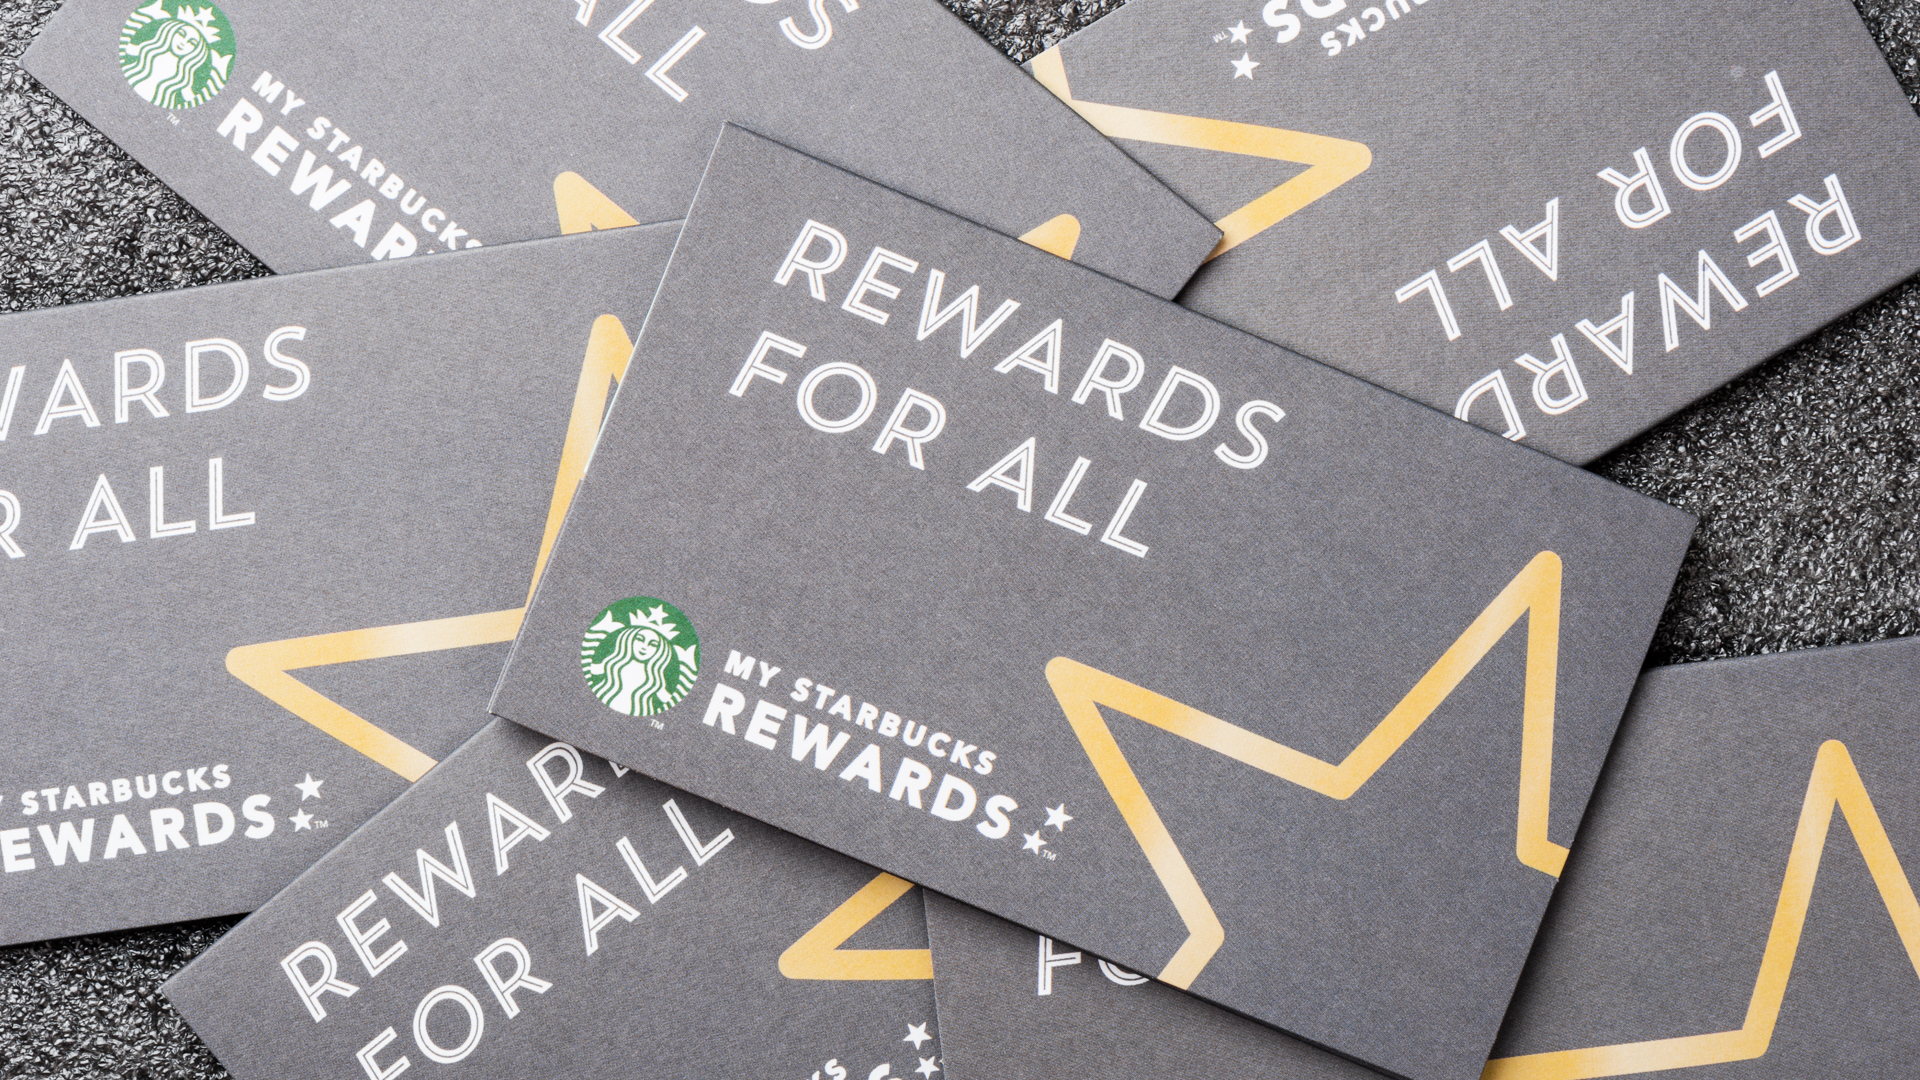 Starbucks relaunches it's Star Rewards Program